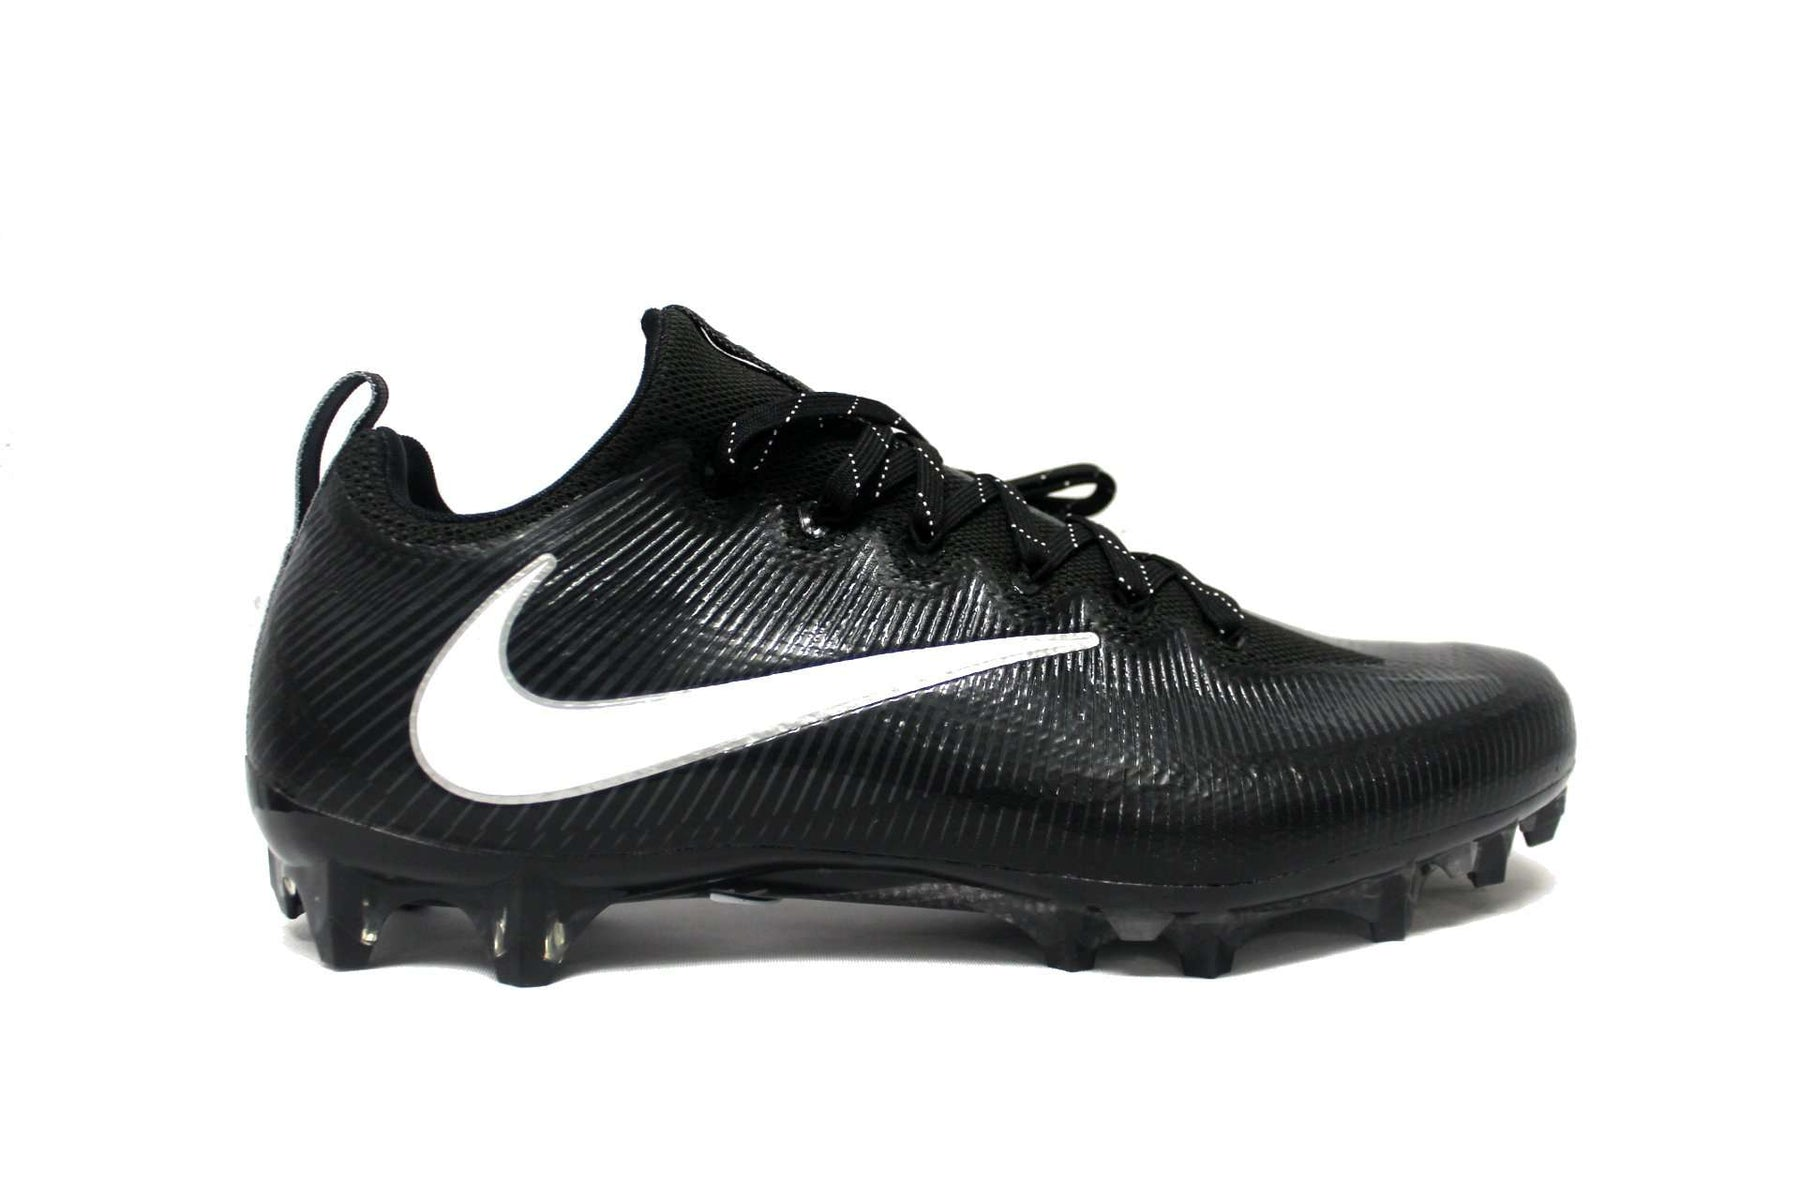 4fa3623f3b8d Nike Vapor Untouchable Pro TB Football Cleats - League Outfitters